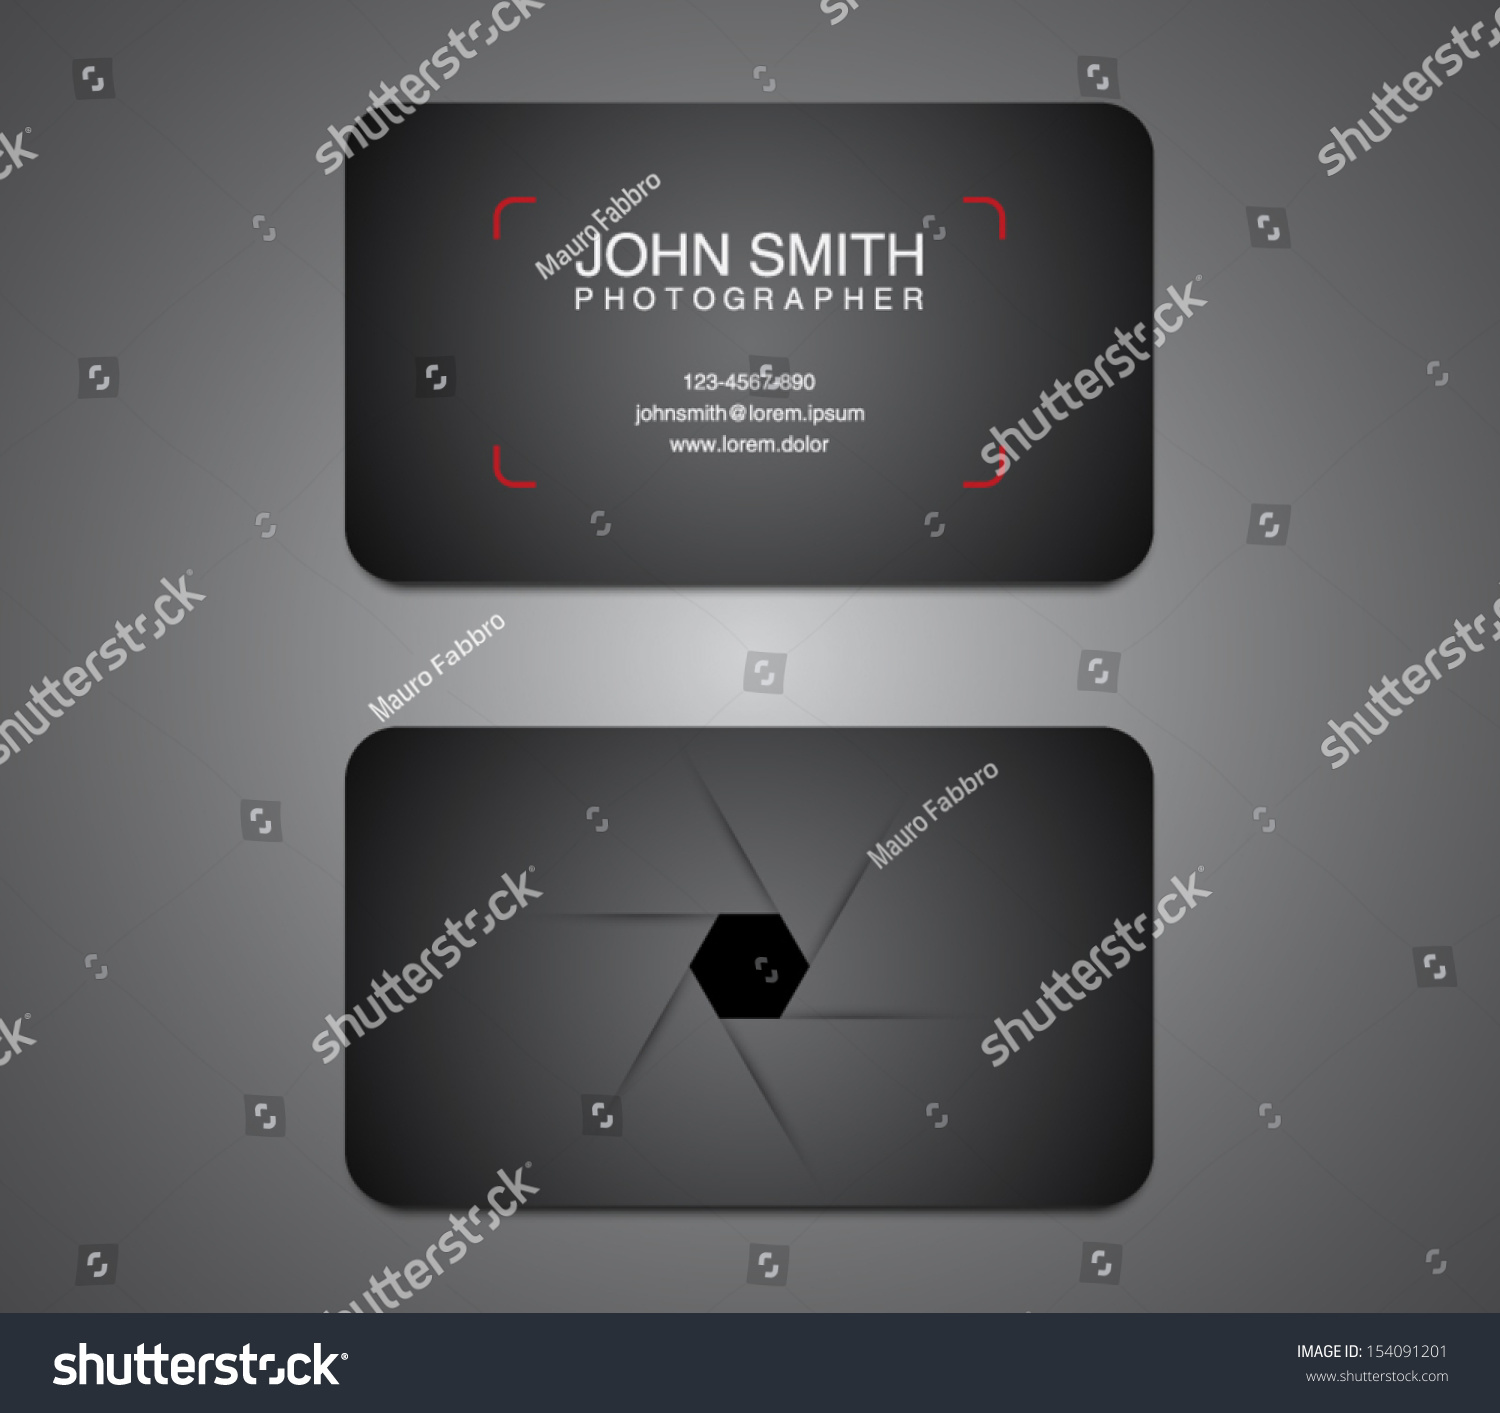 Photographer business card template photography photo stock vector photographer business card template photography photo presentation logo logotype brand friedricerecipe Choice Image